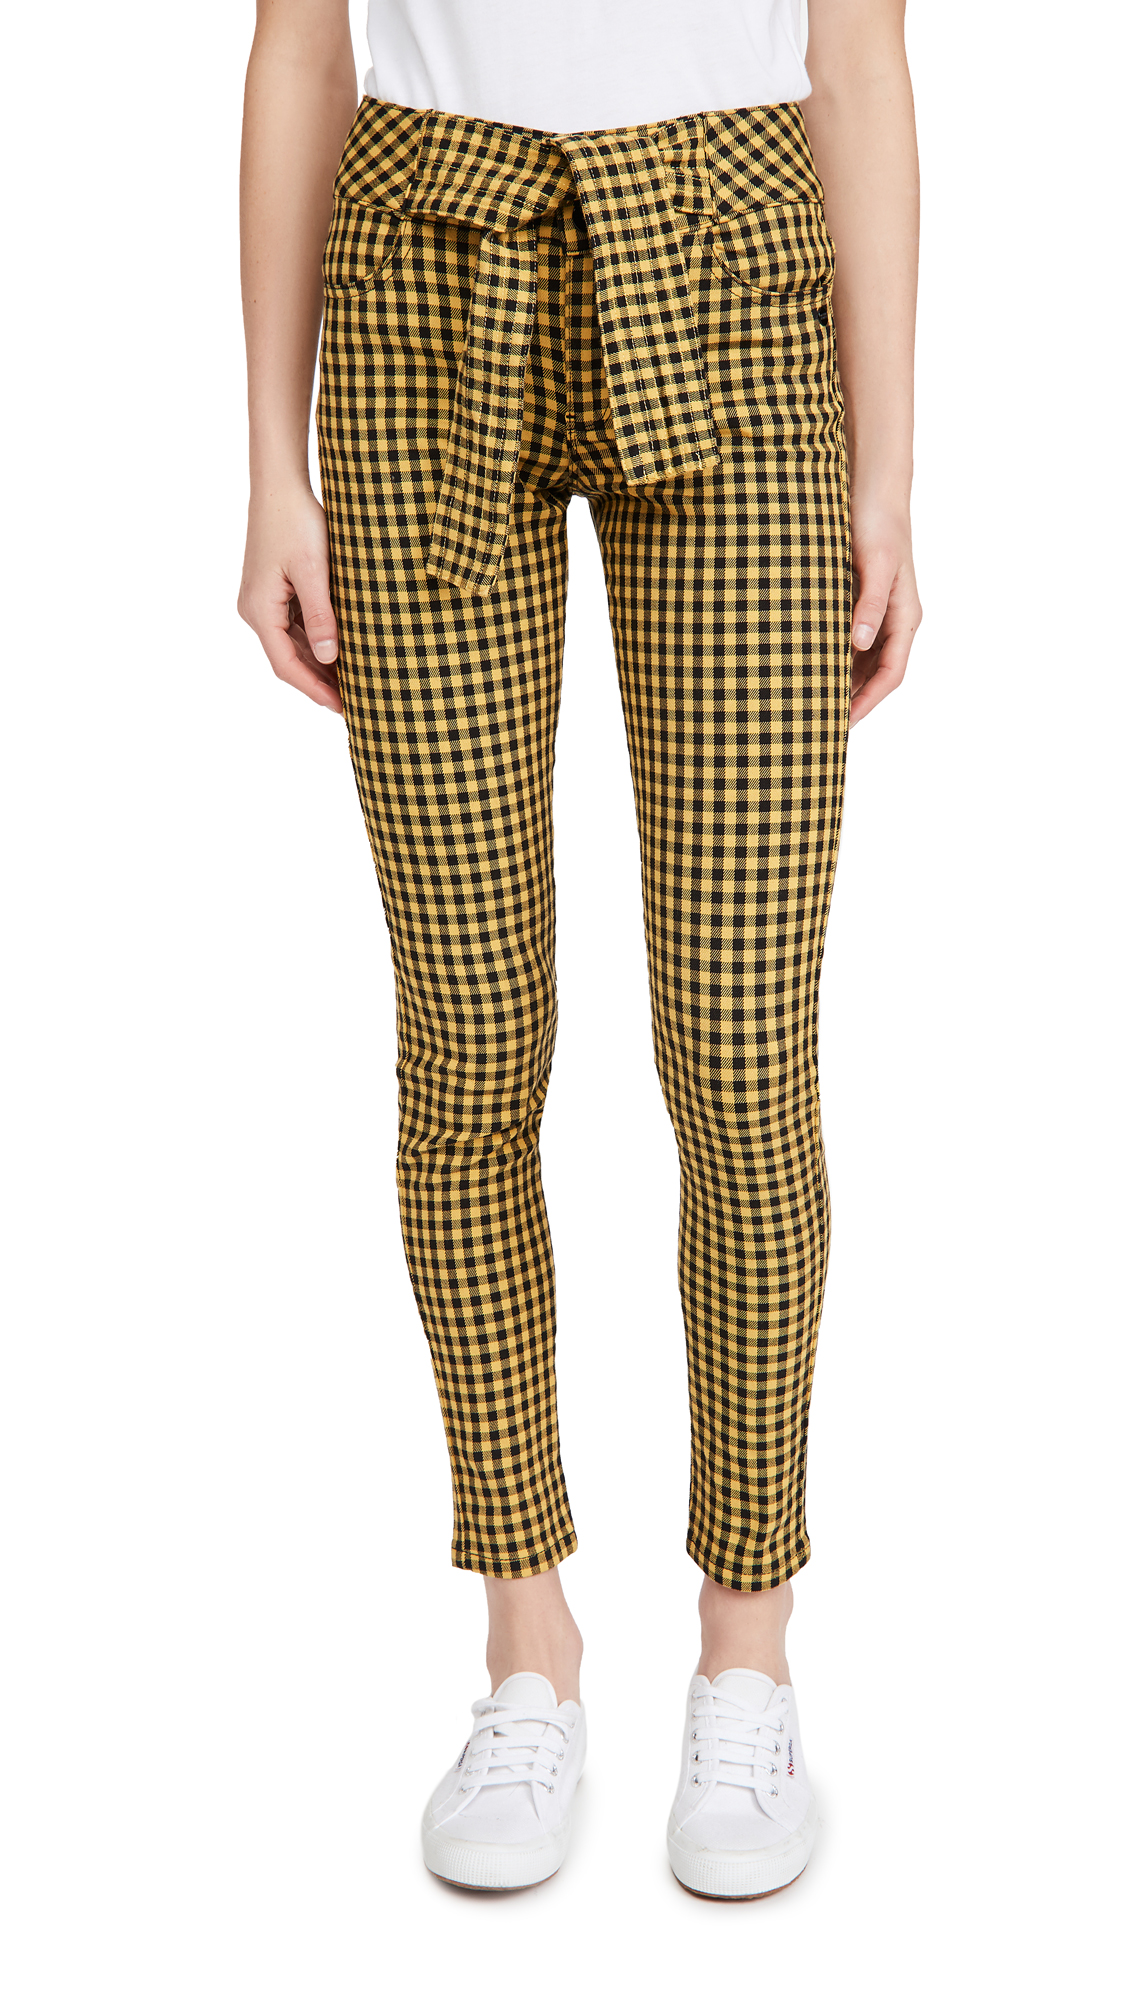 Scotch & Soda/Maison Scotch High-Rise Skinny Checked Pants